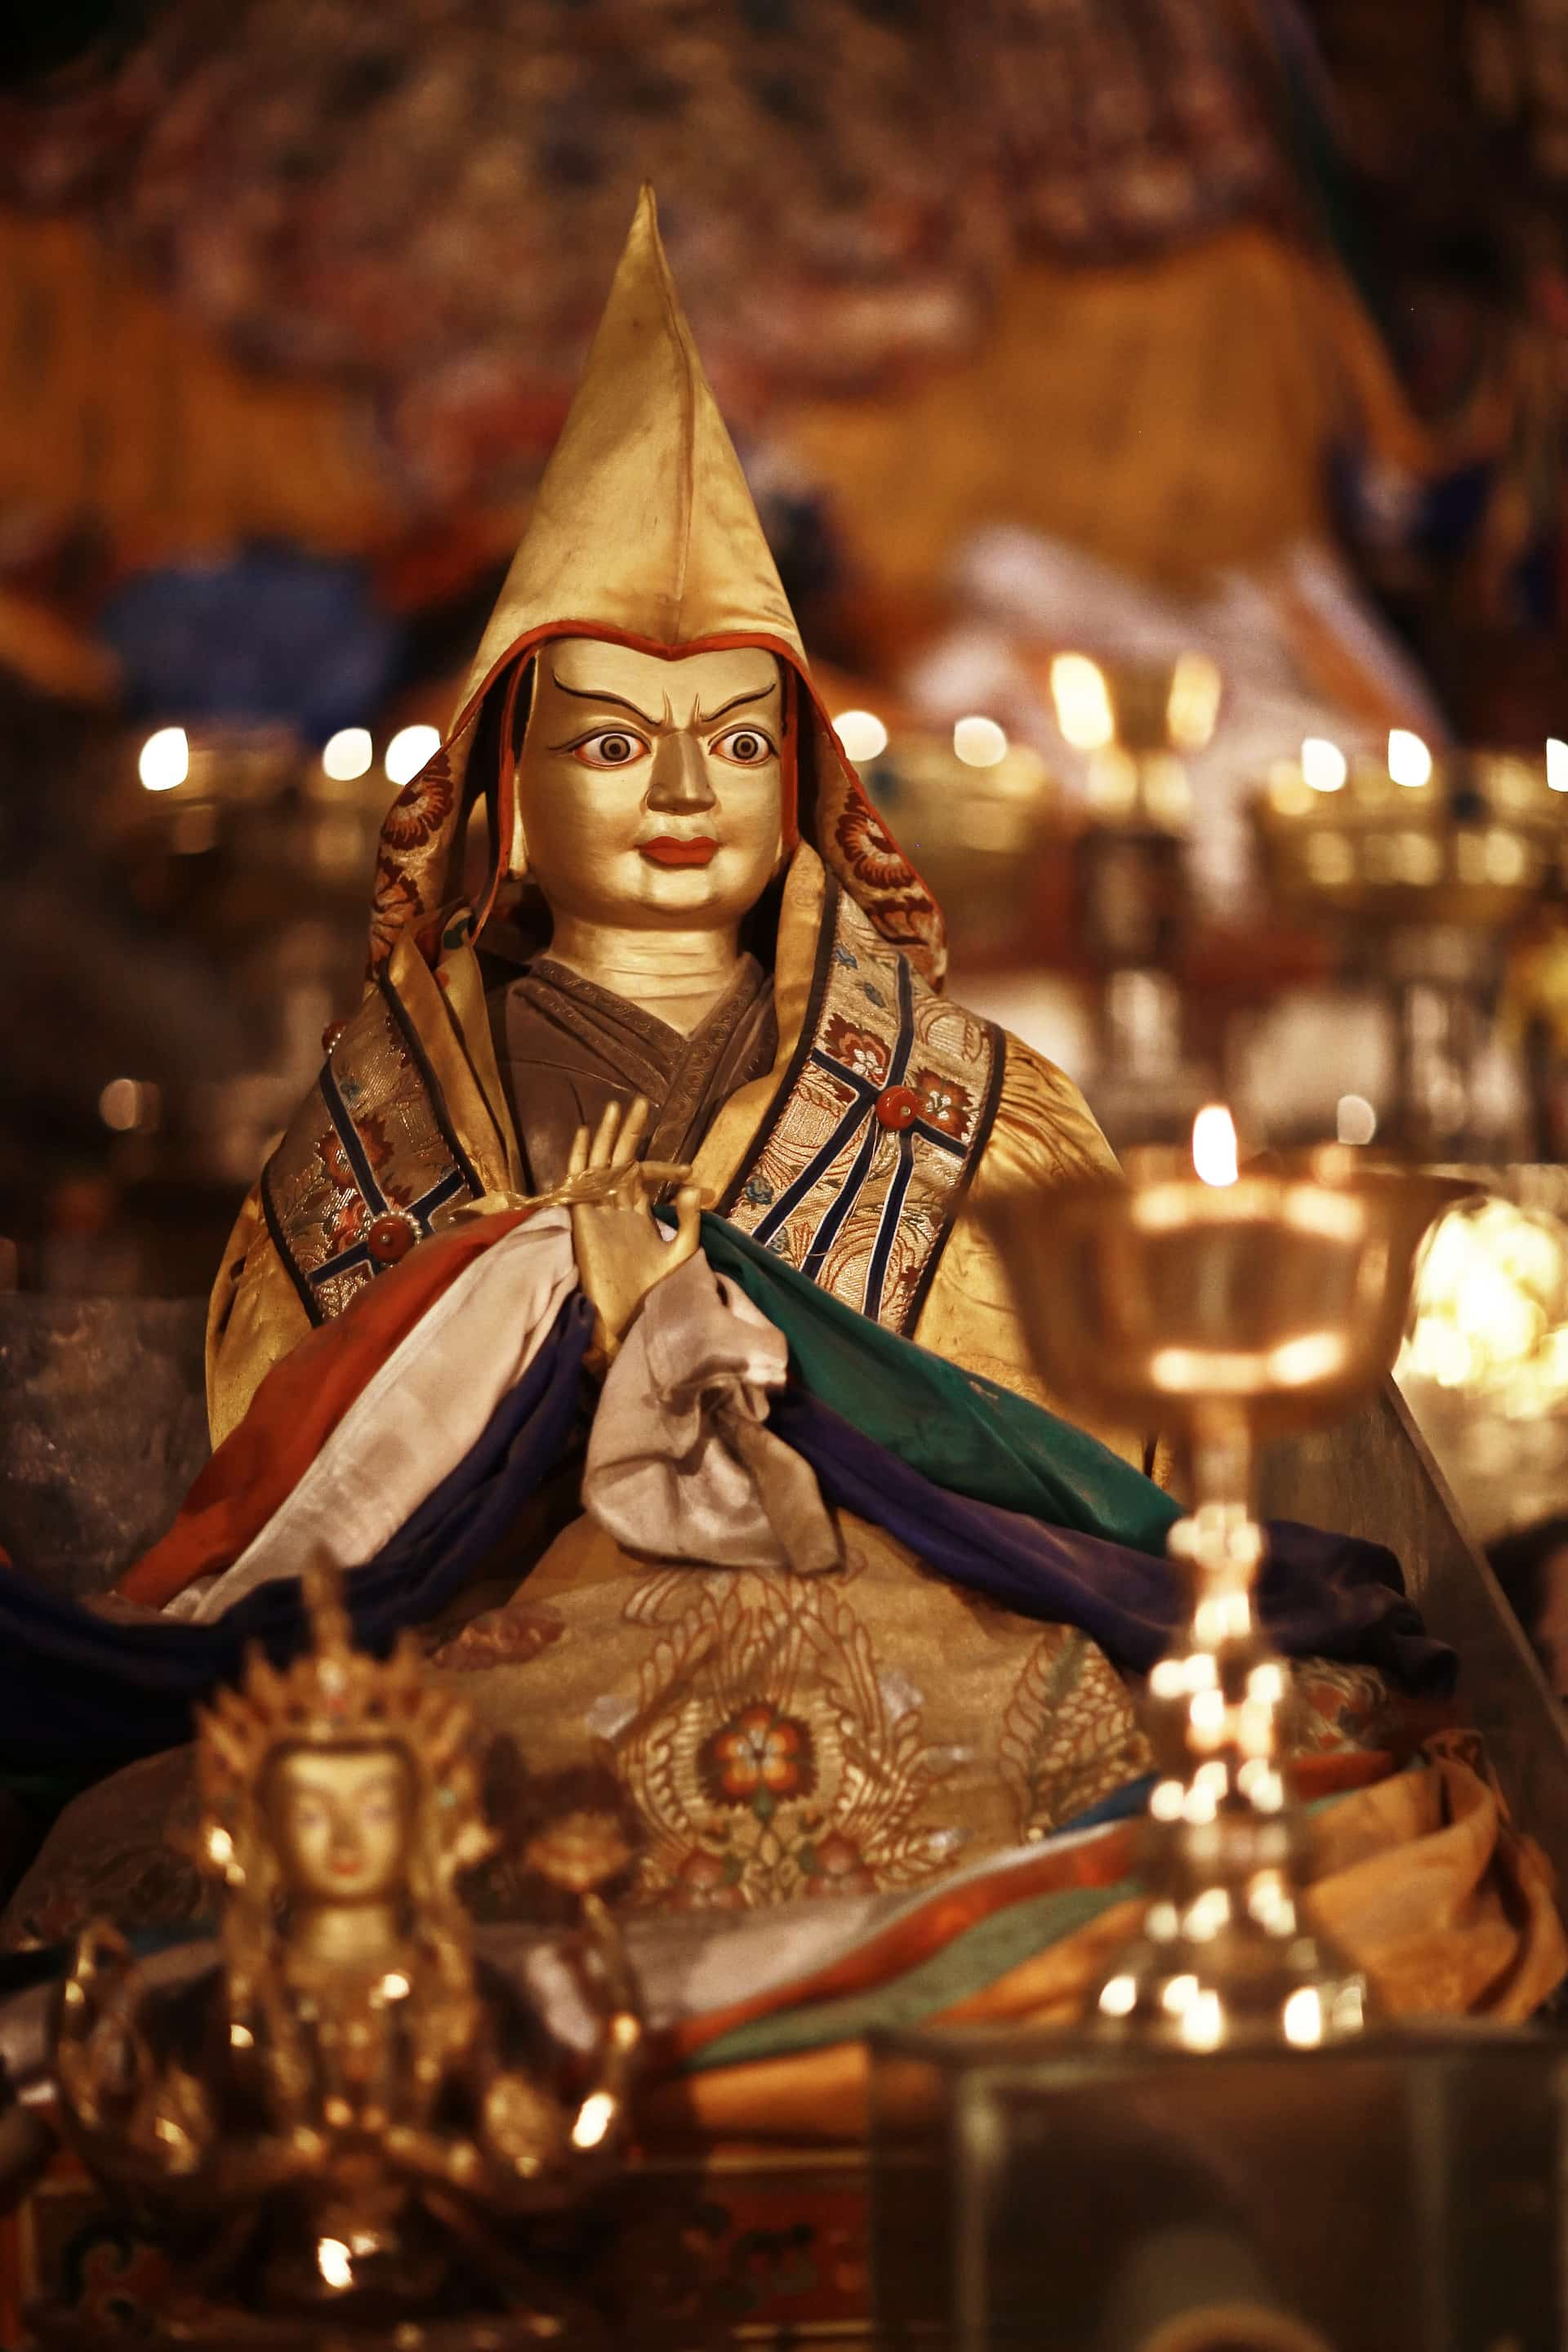 Statue of the Tsongkhapa in Tibetan monastery